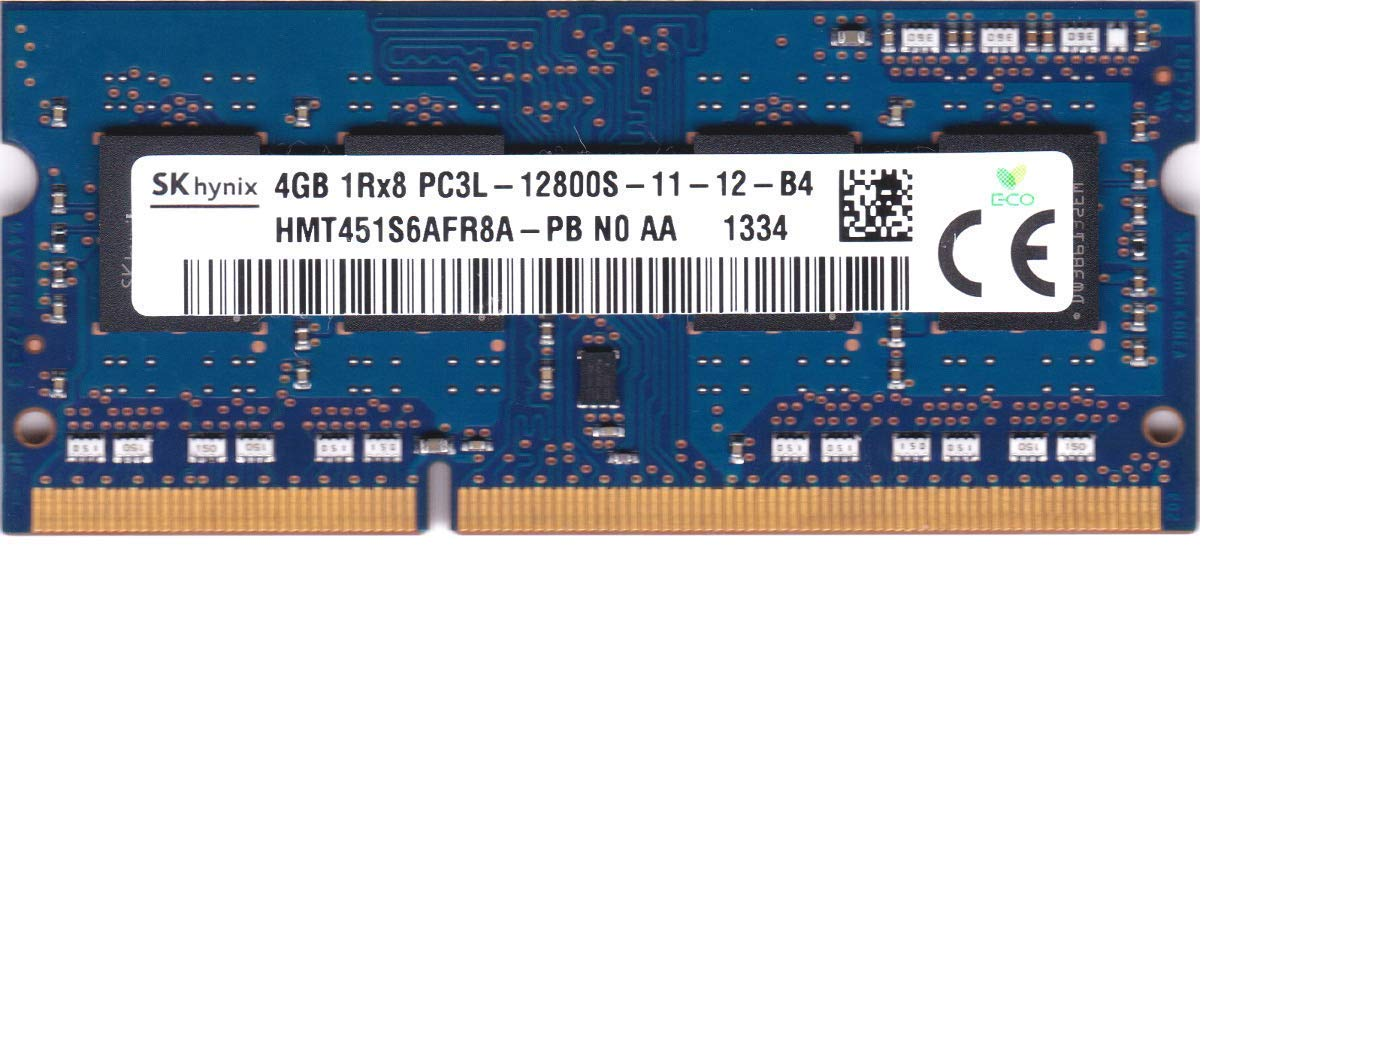 Memoria Ram 4gb Hynix Hmt451s6afr8a-pb Pc3-12800 Ddr3-1600mhz Non-ecc Unbuffered Cl11 204-pin Sodimm 1.35v Low Voltage S